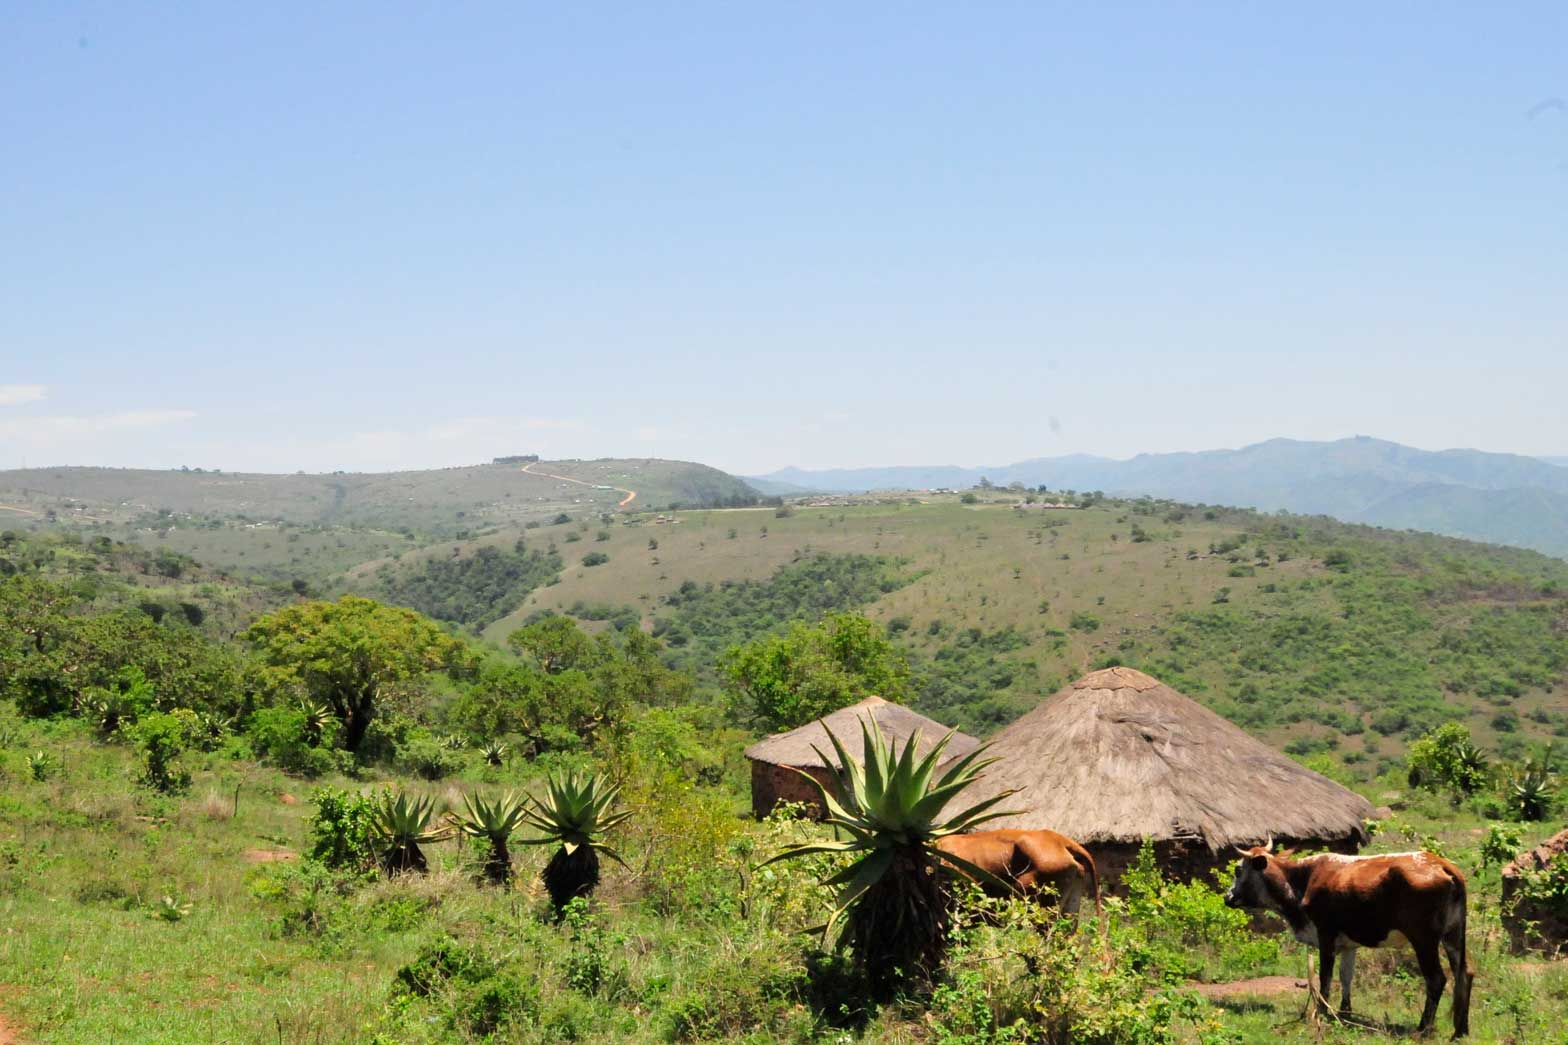 Small Swazi community